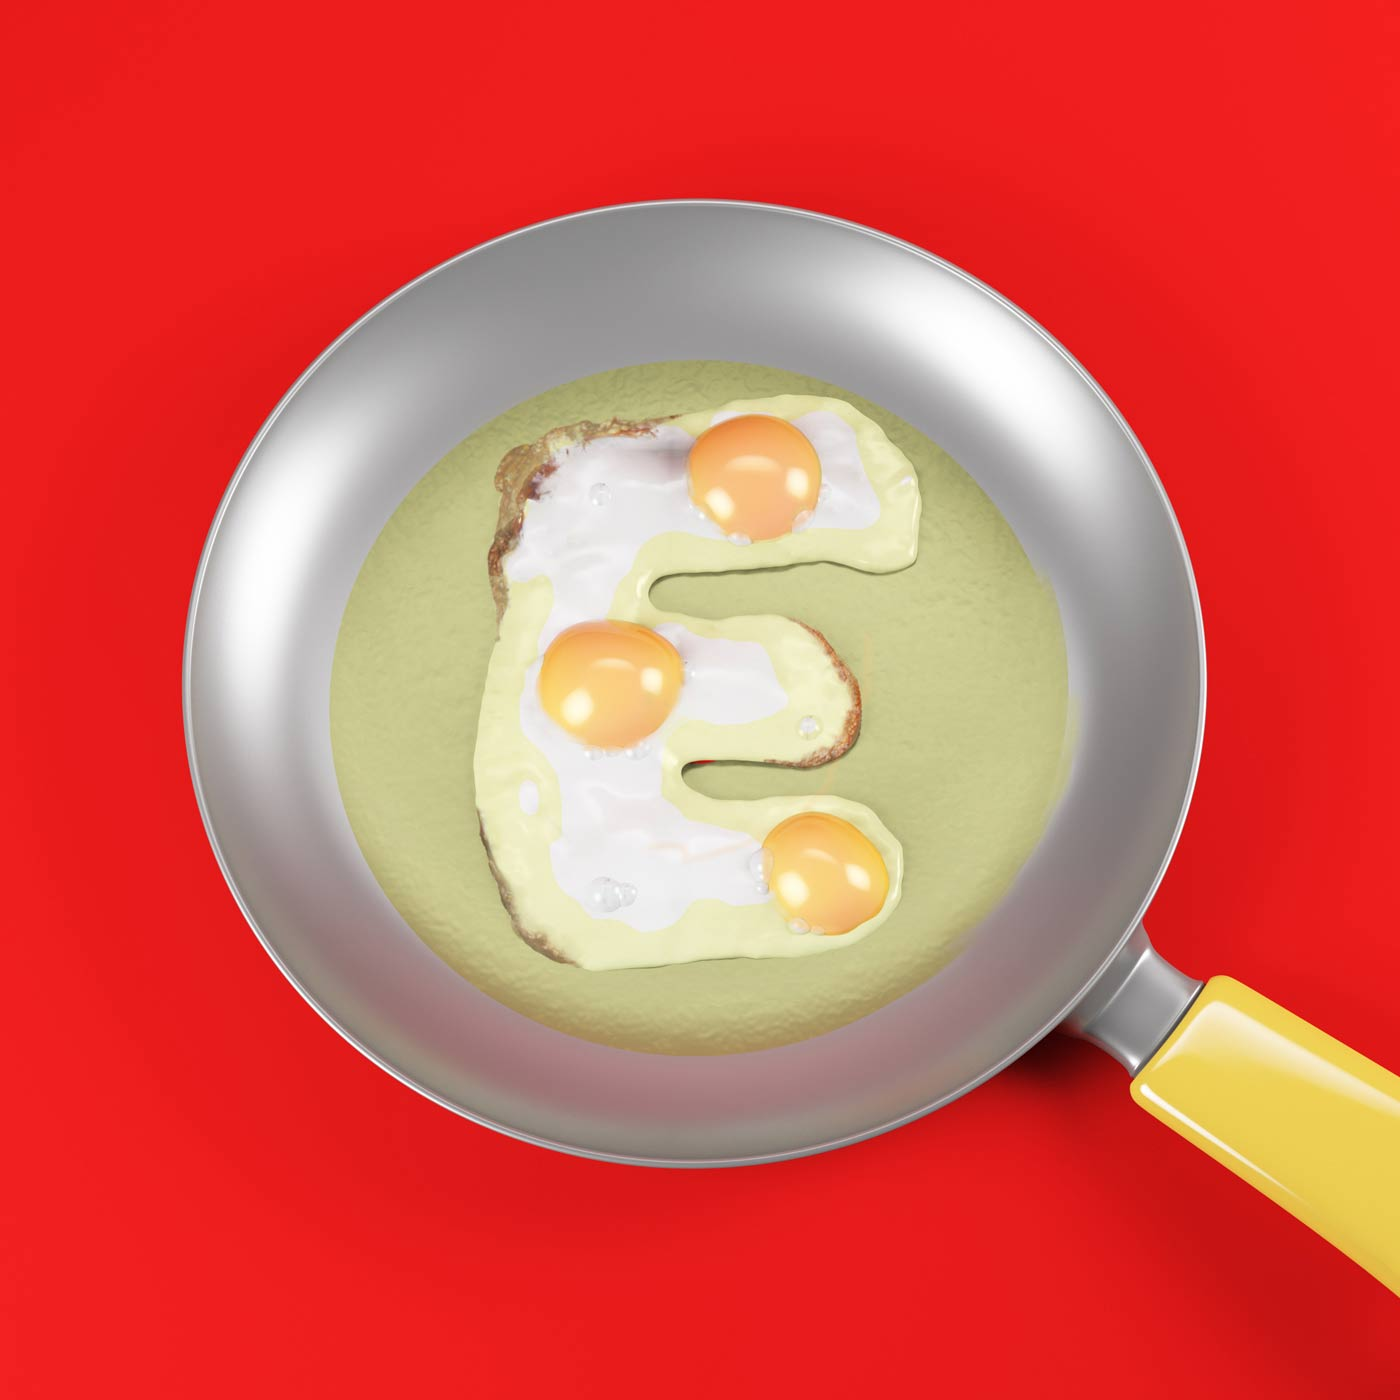 FOOD 3DFOOD FOODALPHABET CESS 3D 3DTYPE LETTERING CGI 3DARTIST EGG